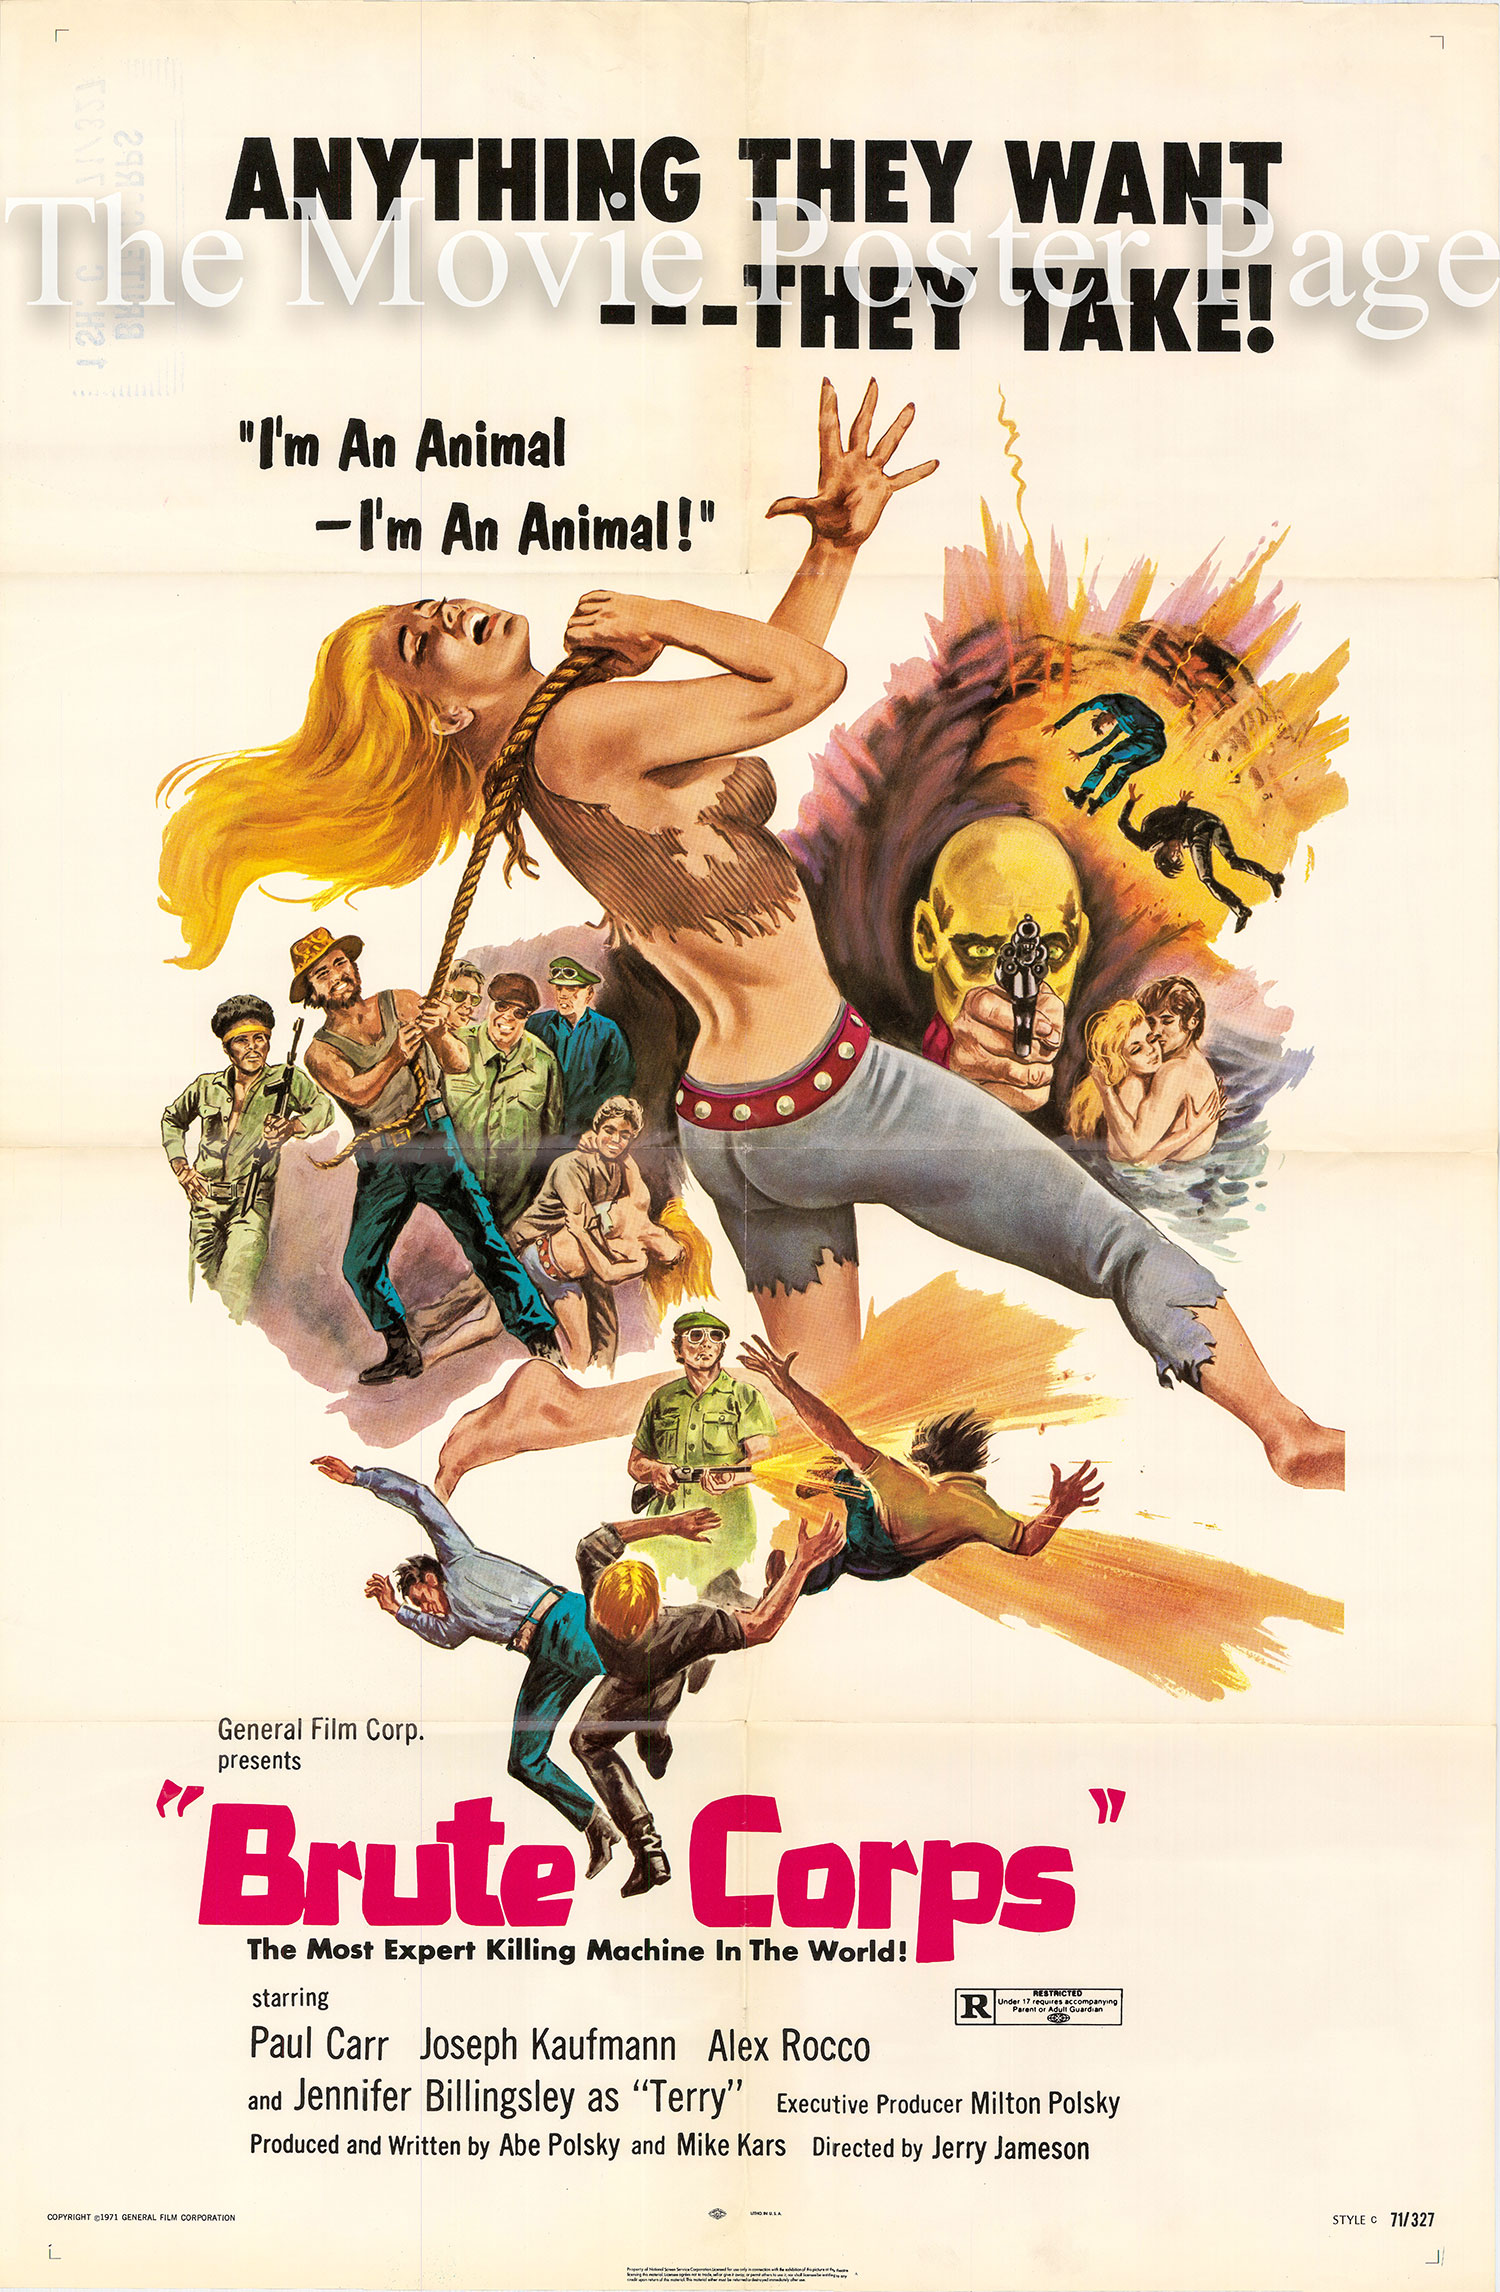 Pictured is the style C US one-sheet promotional poster for the 1972 Jerry Jameson film Brute Corps starring Paul Carr.